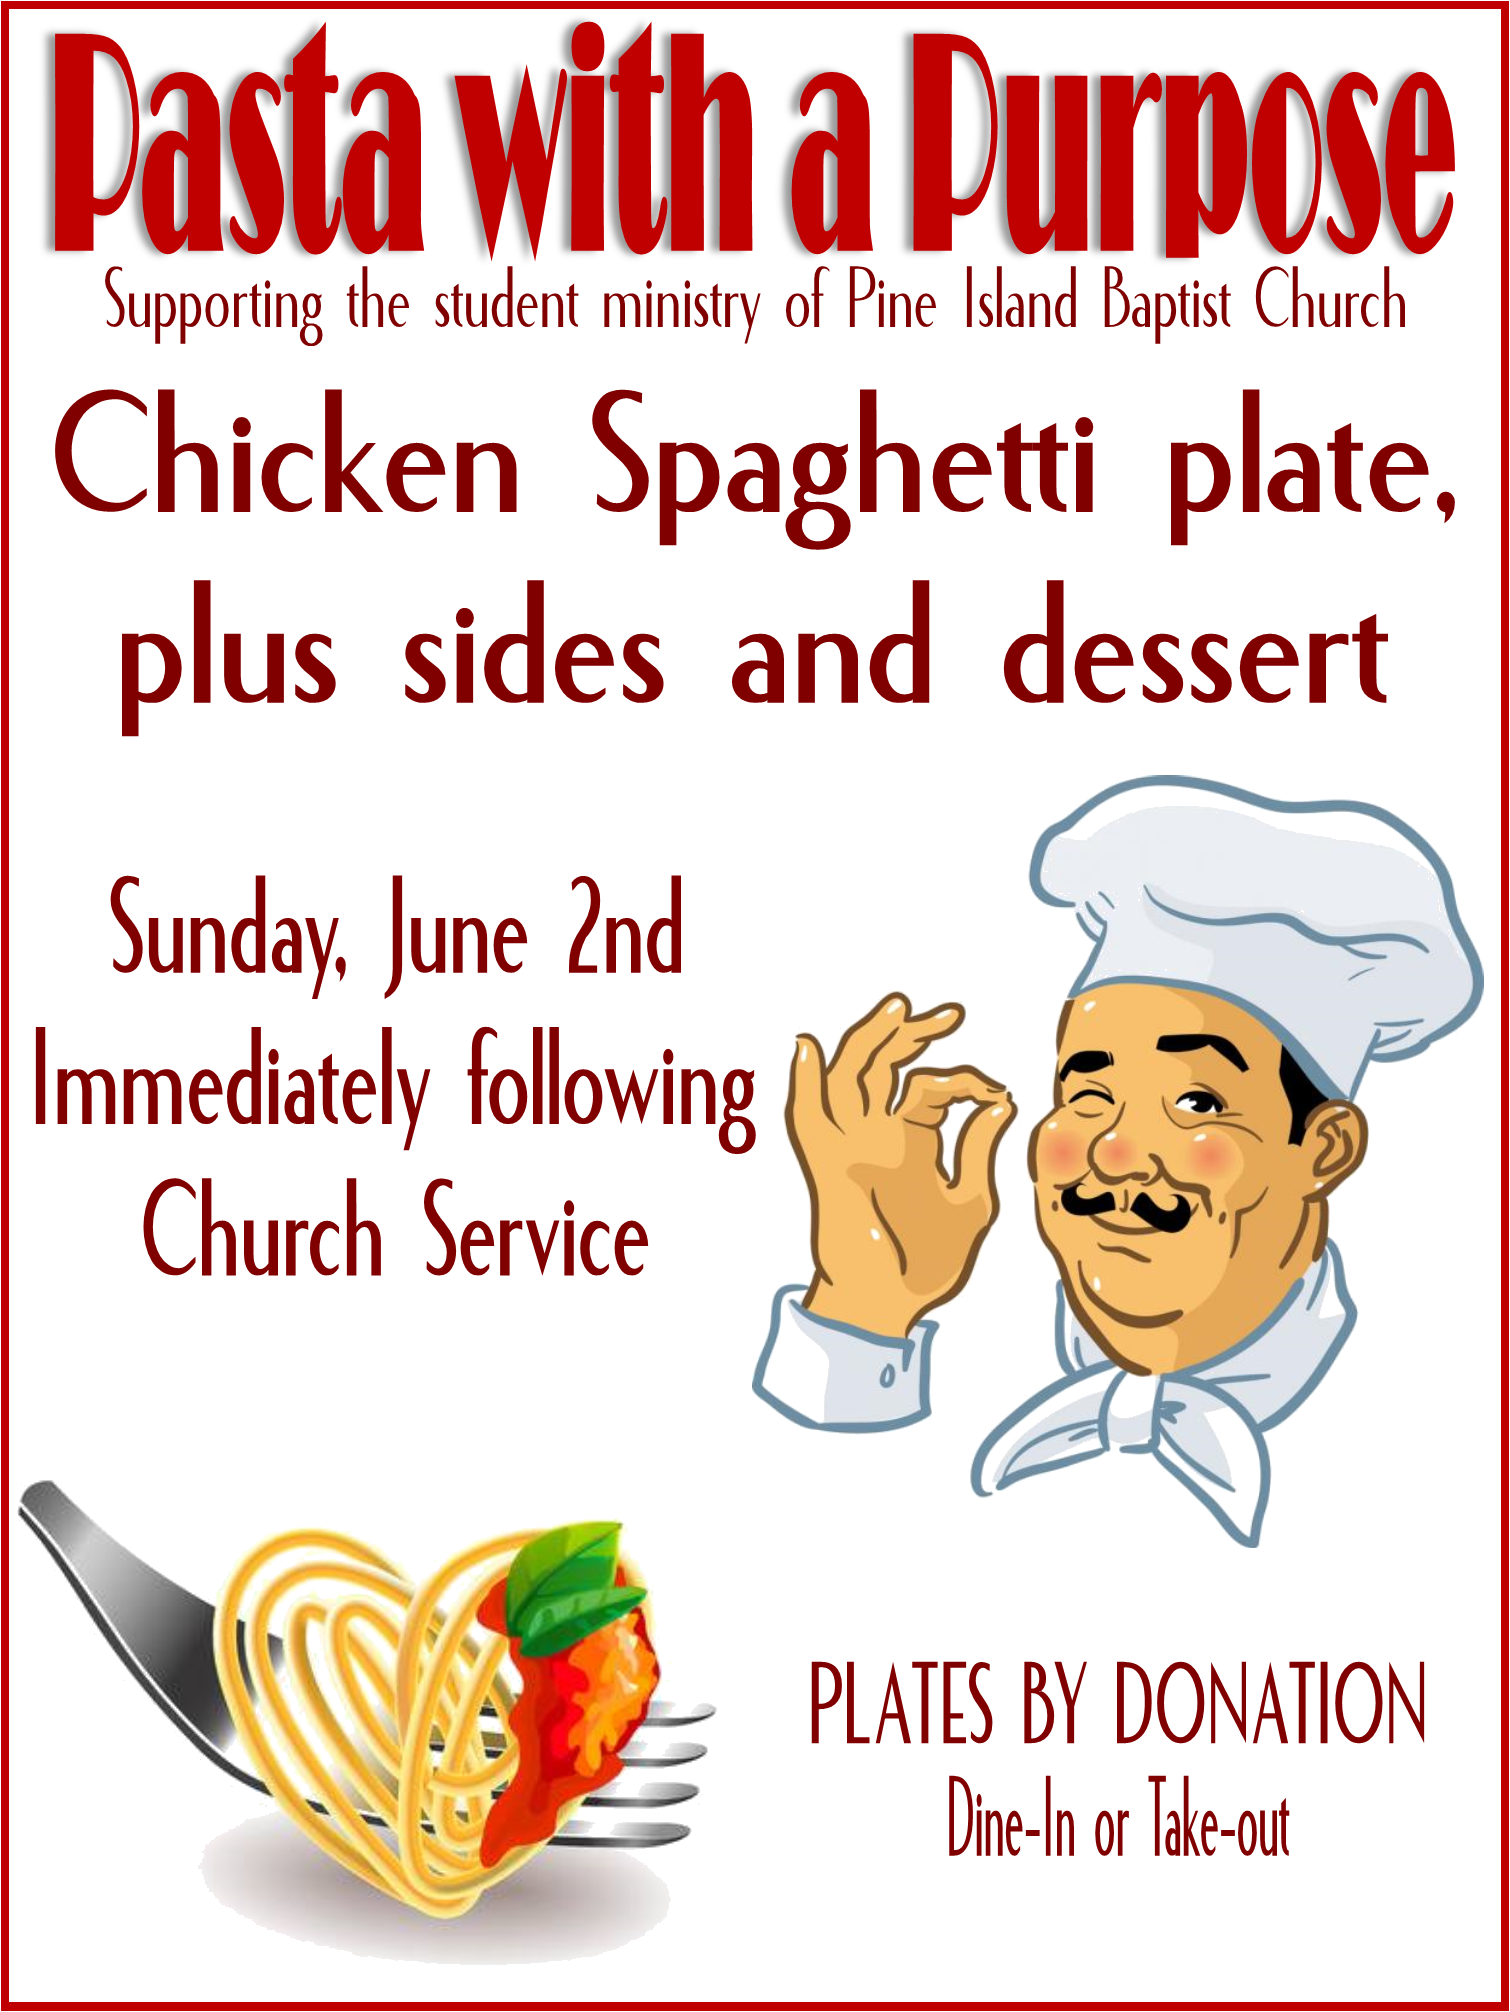 Pasta with a Purpose, June 2nd, after Church — Pine Island